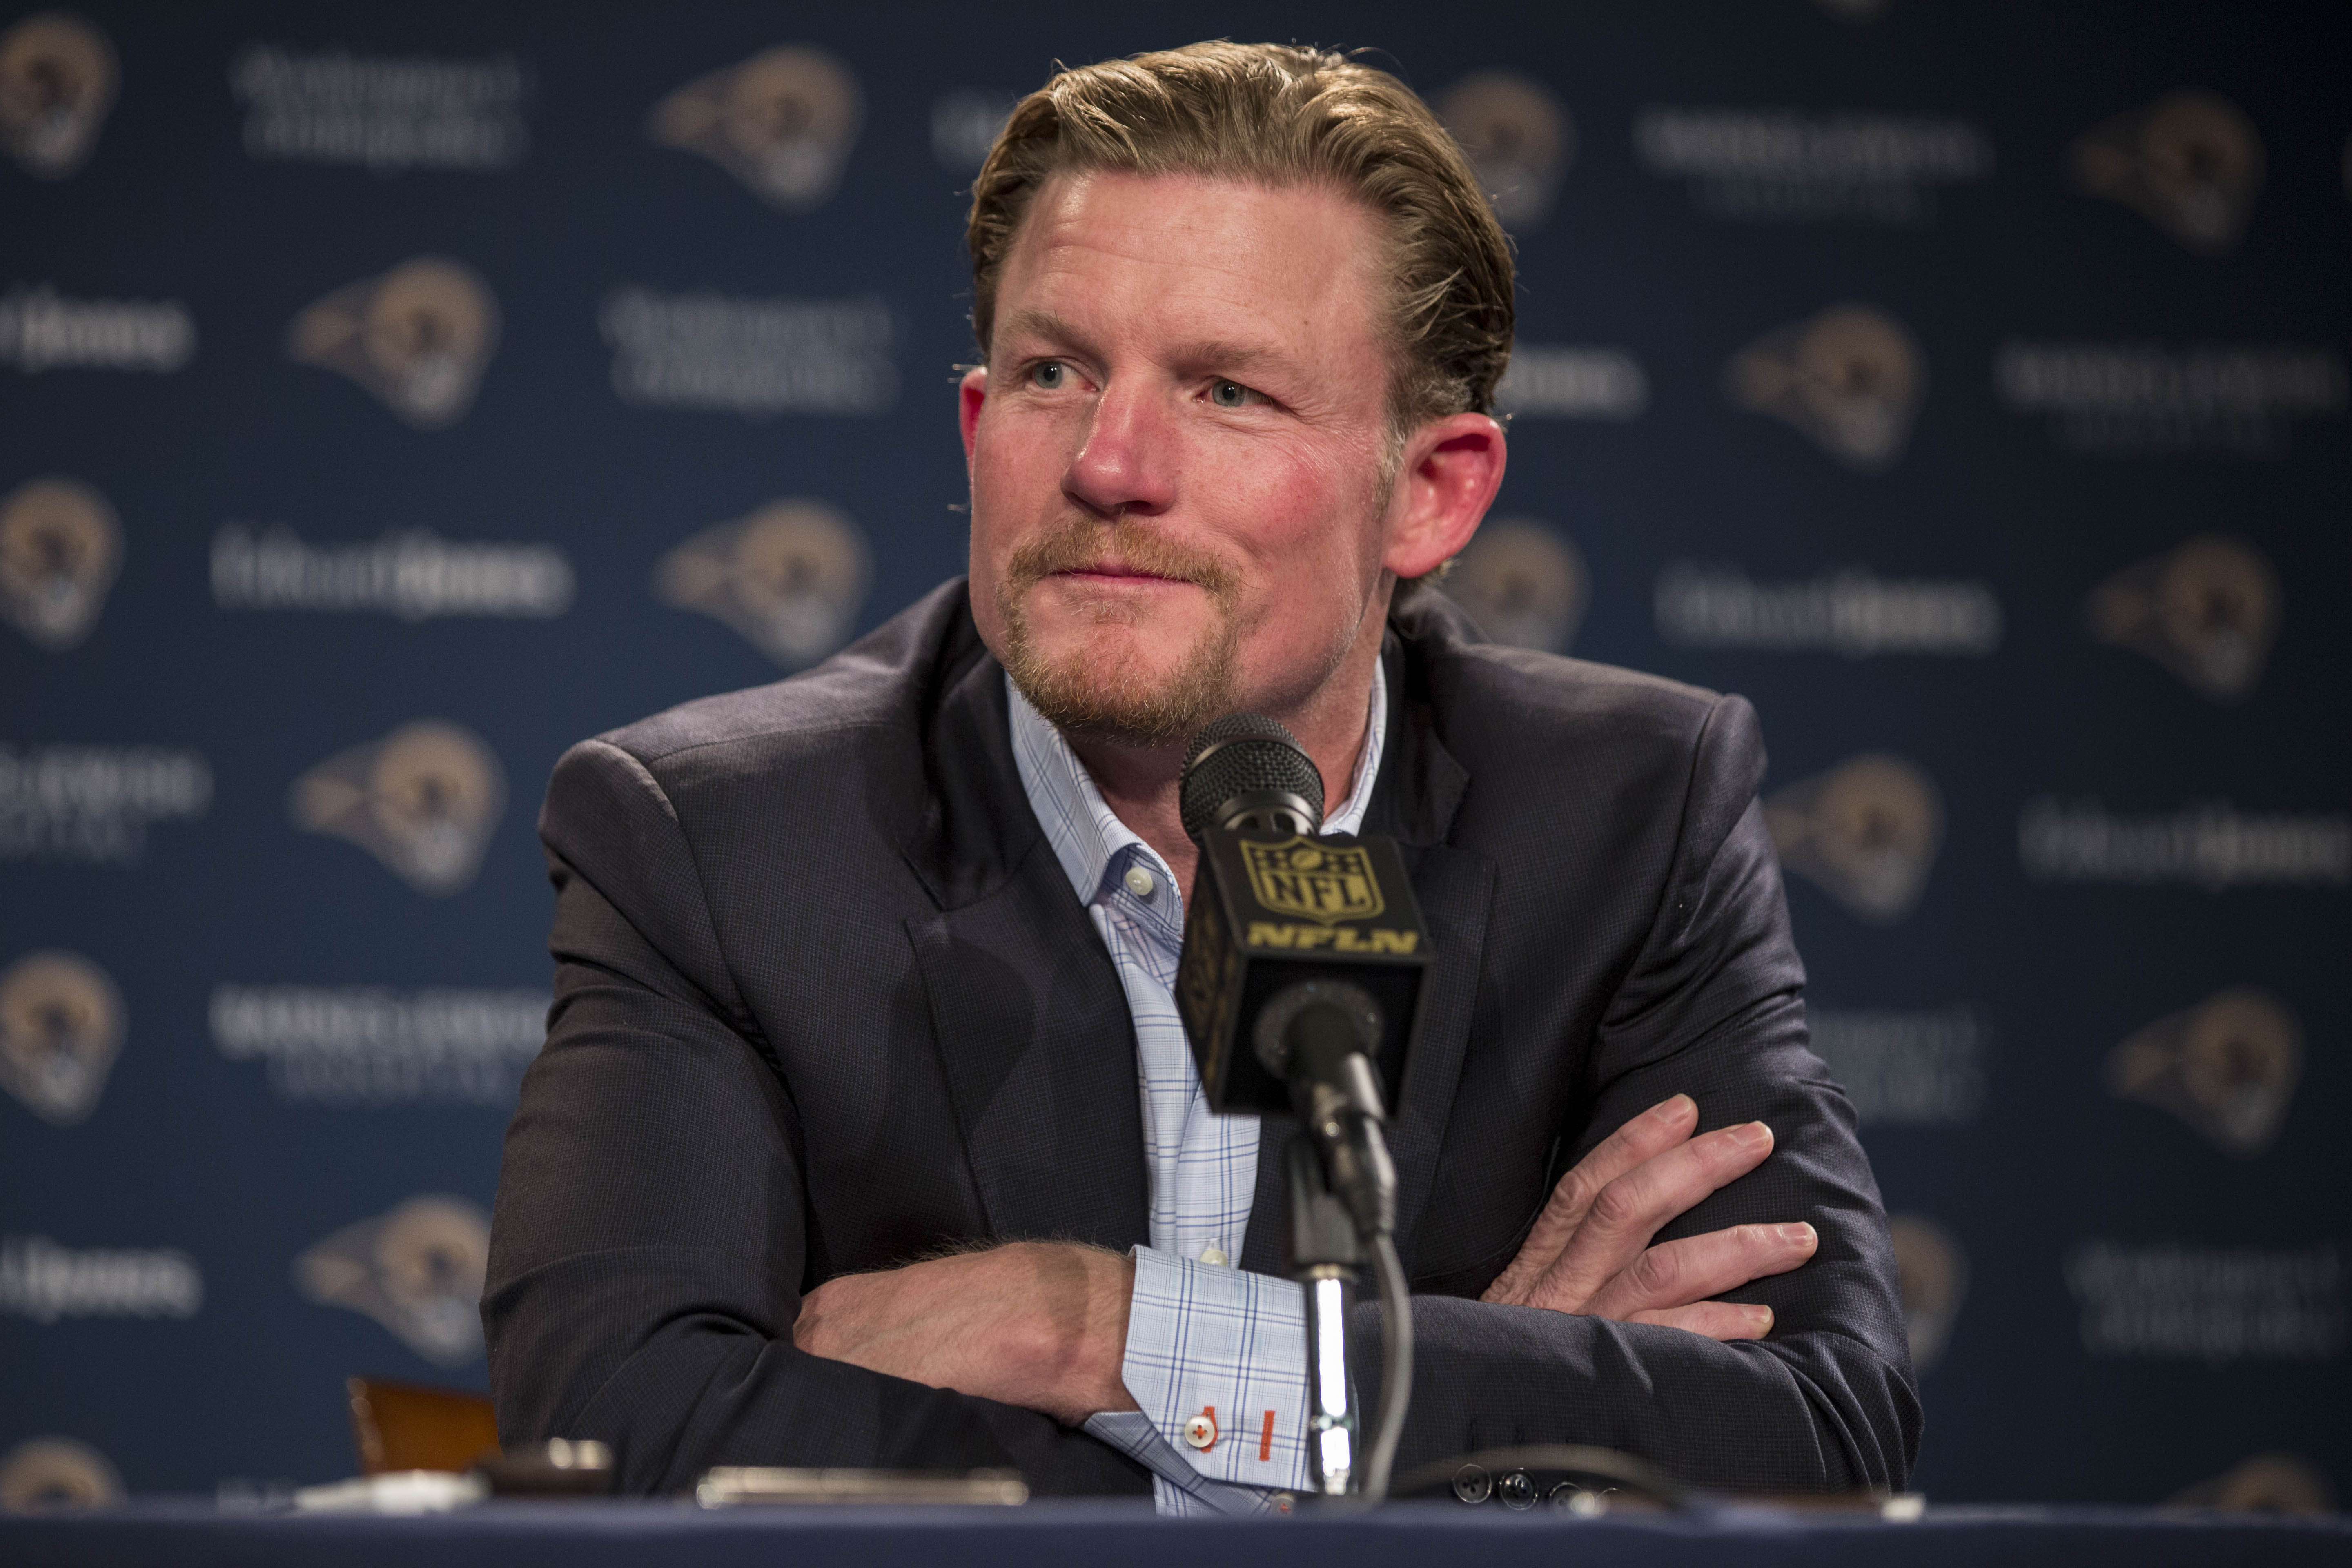 St. Louis Rams General Manager Les Snead introduces first-round draft pick Todd Gurley during a news conference at the NFL football team's practice facility Friday, May 1, 2015, in St. Louis. Gurley, a running back from Georgia, was picked tenth overall b